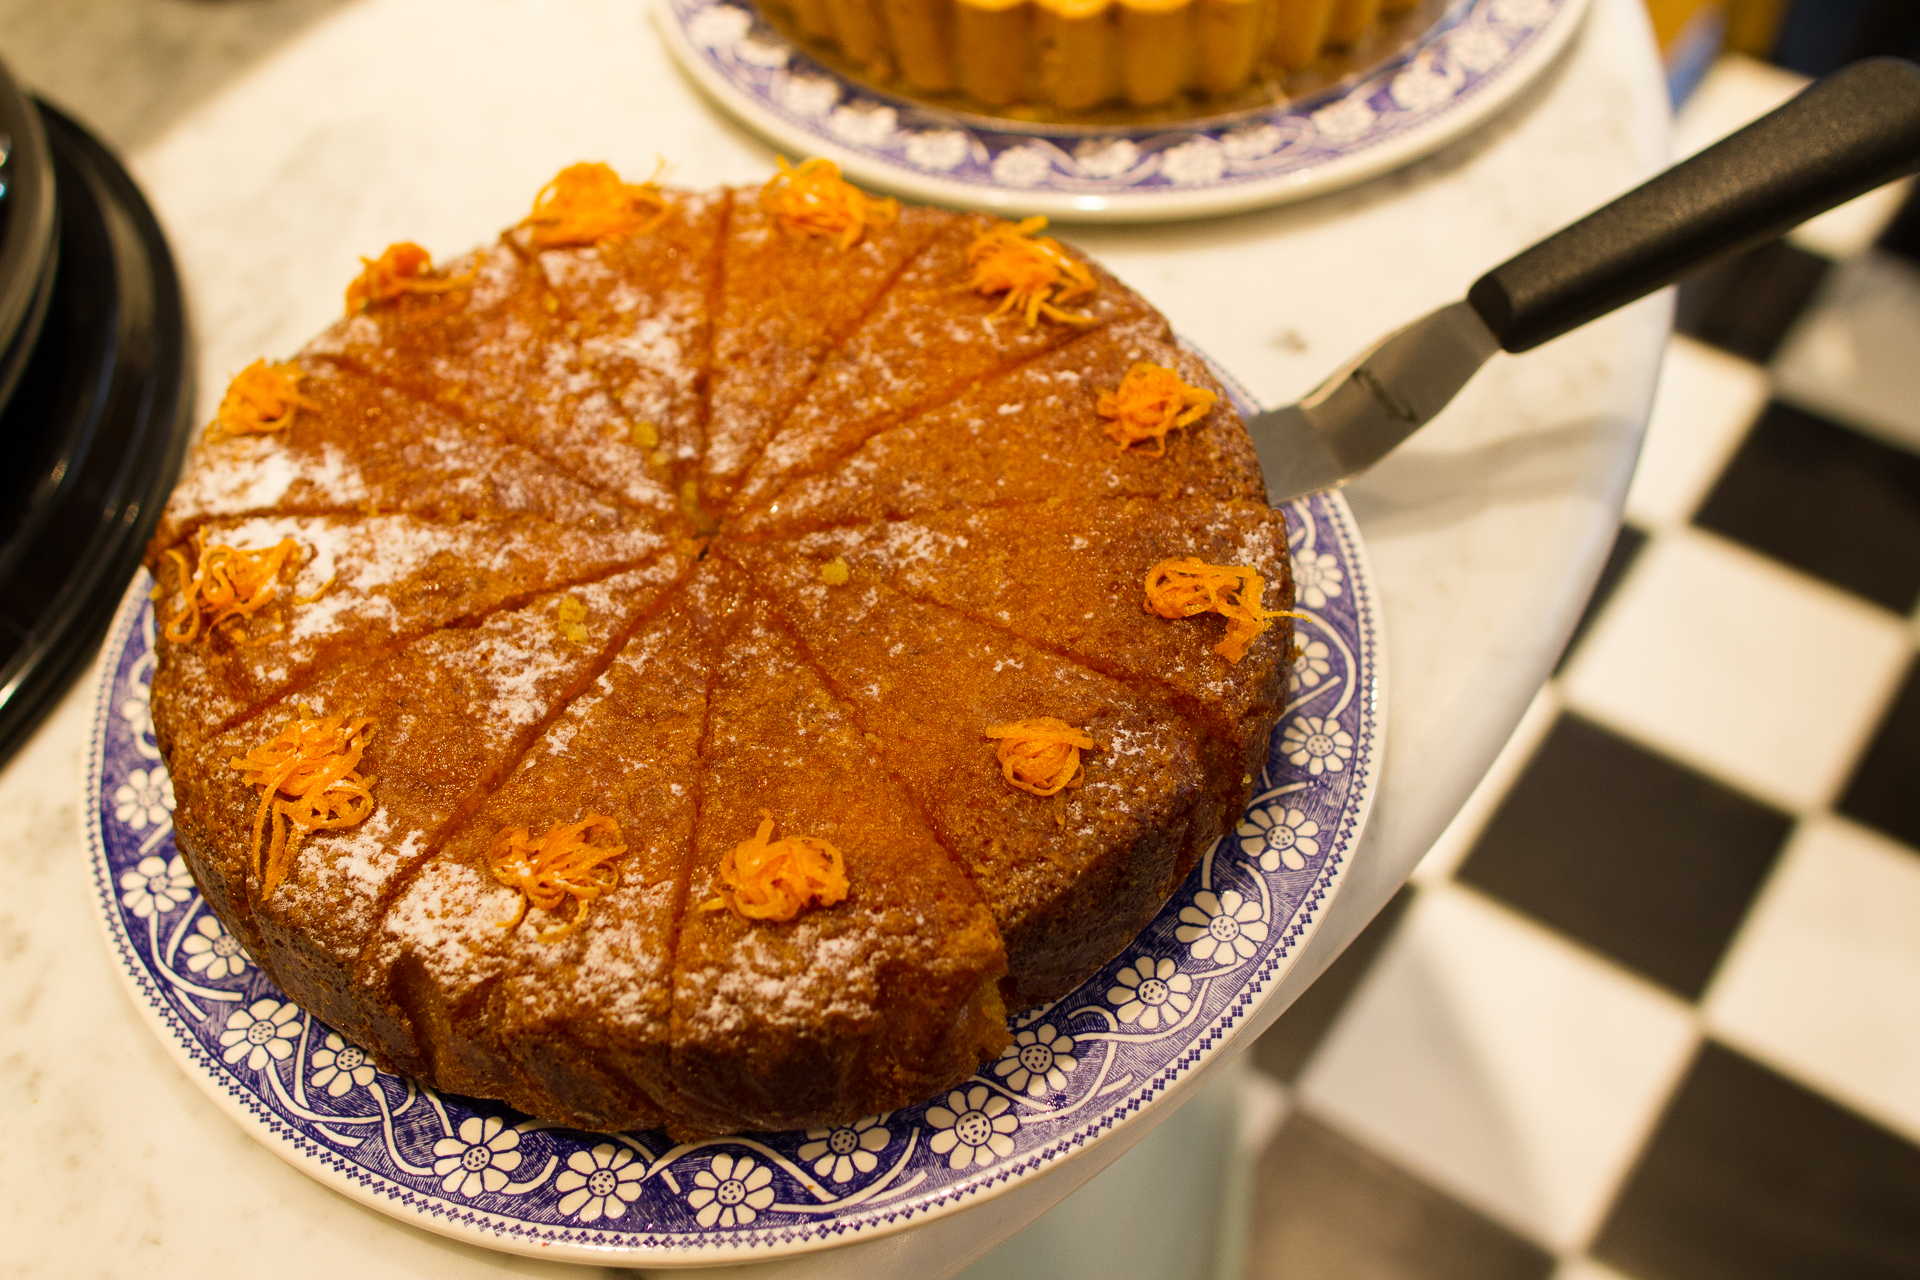 Tunisian Orange cake at our London cheese shop